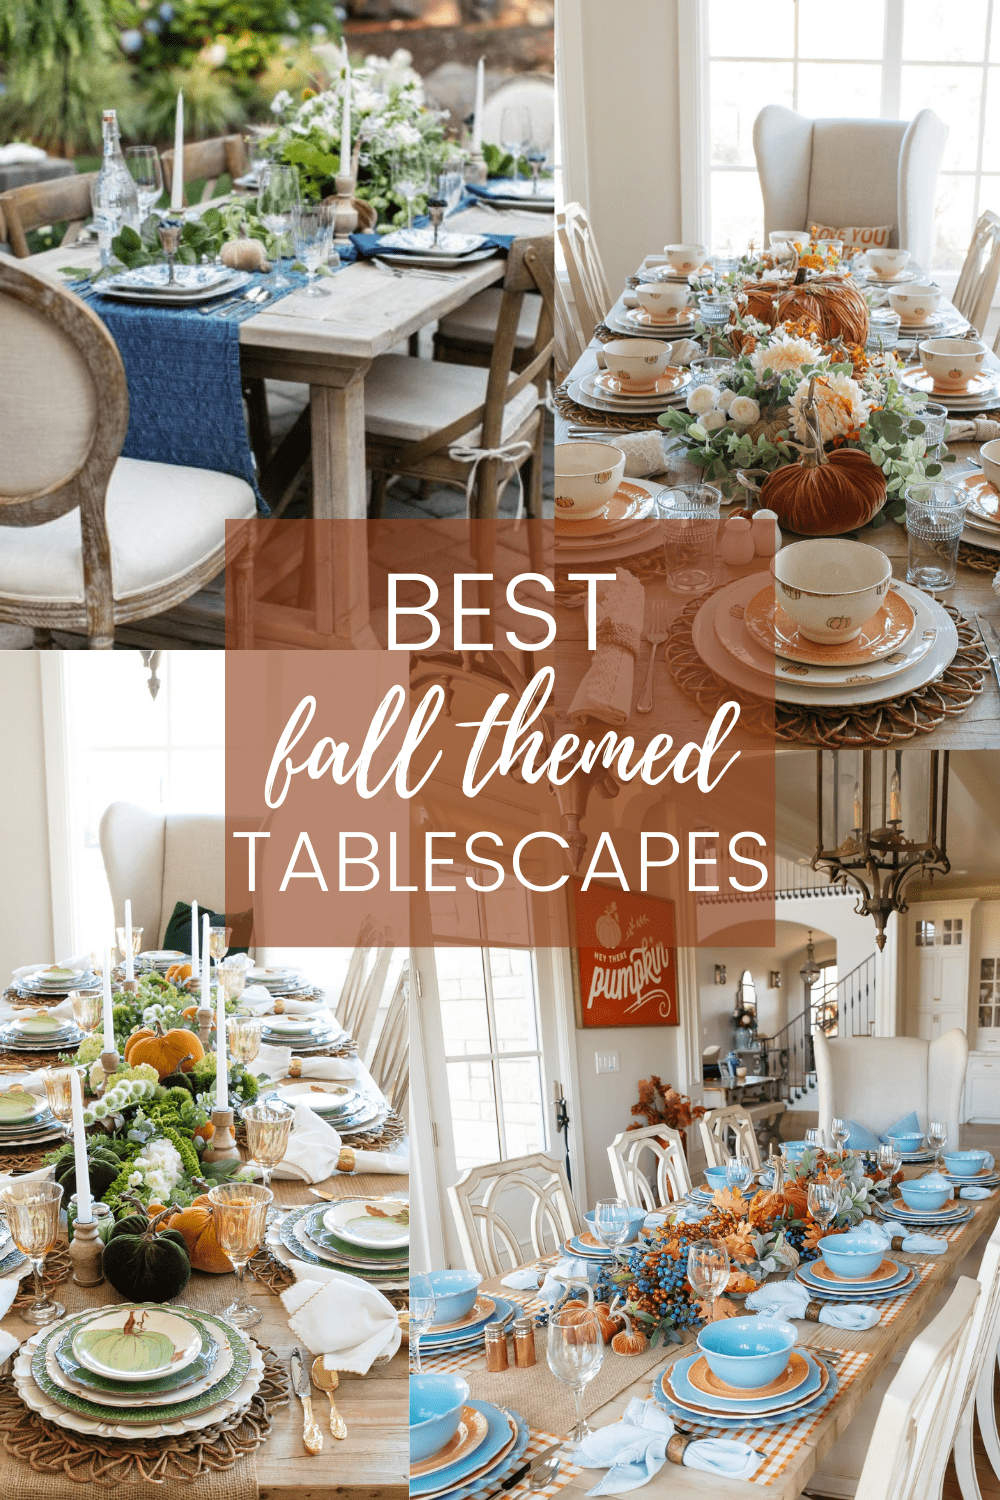 10 best fall themed tablescapes